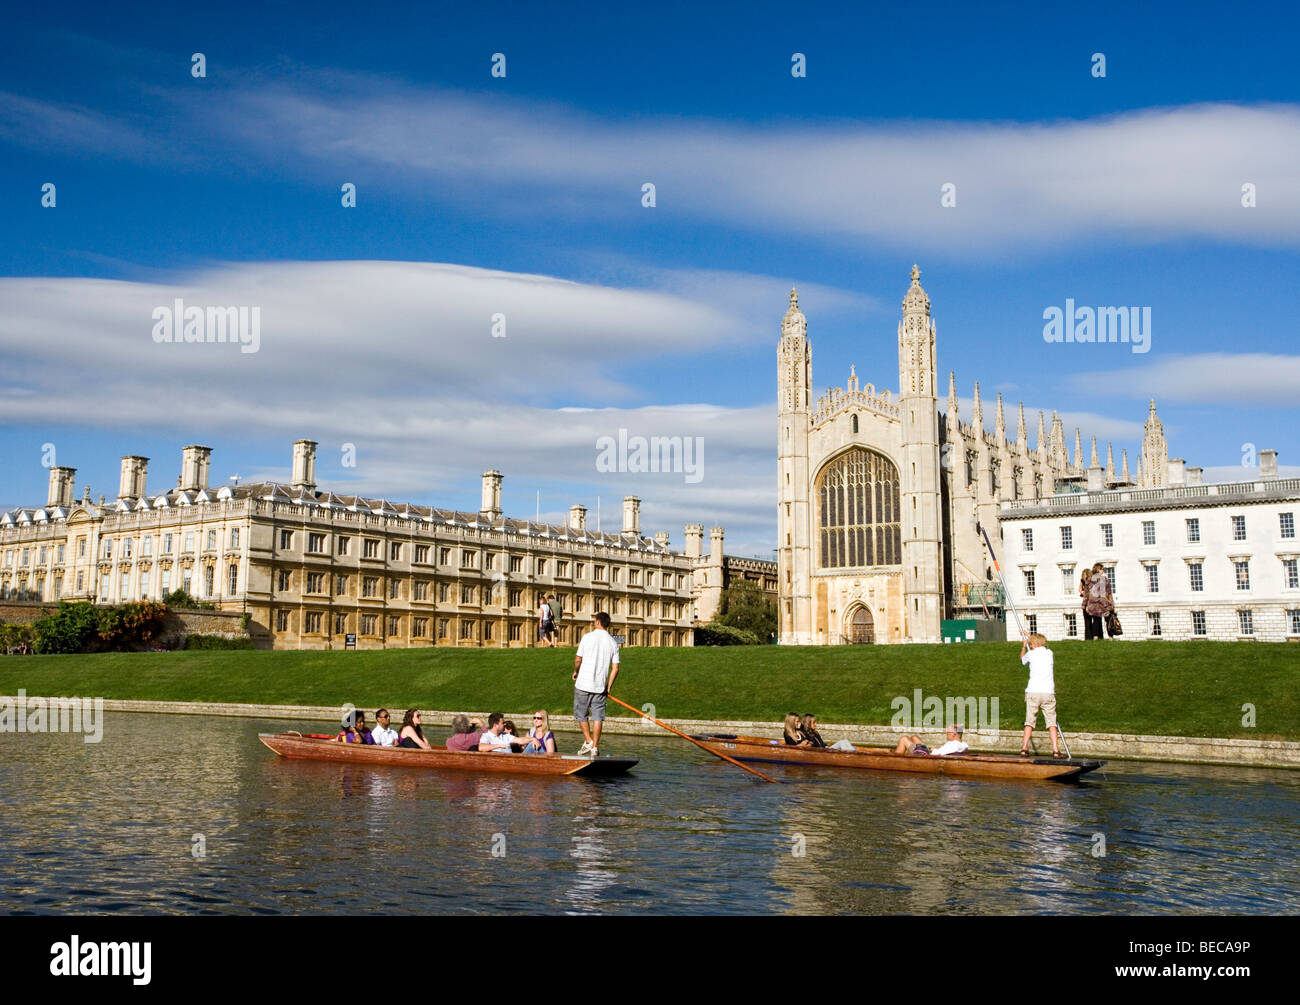 Punt boat with tourists on the river Cam at the Kings college in Cambridge, Cambridgeshire, UK. - Stock Image